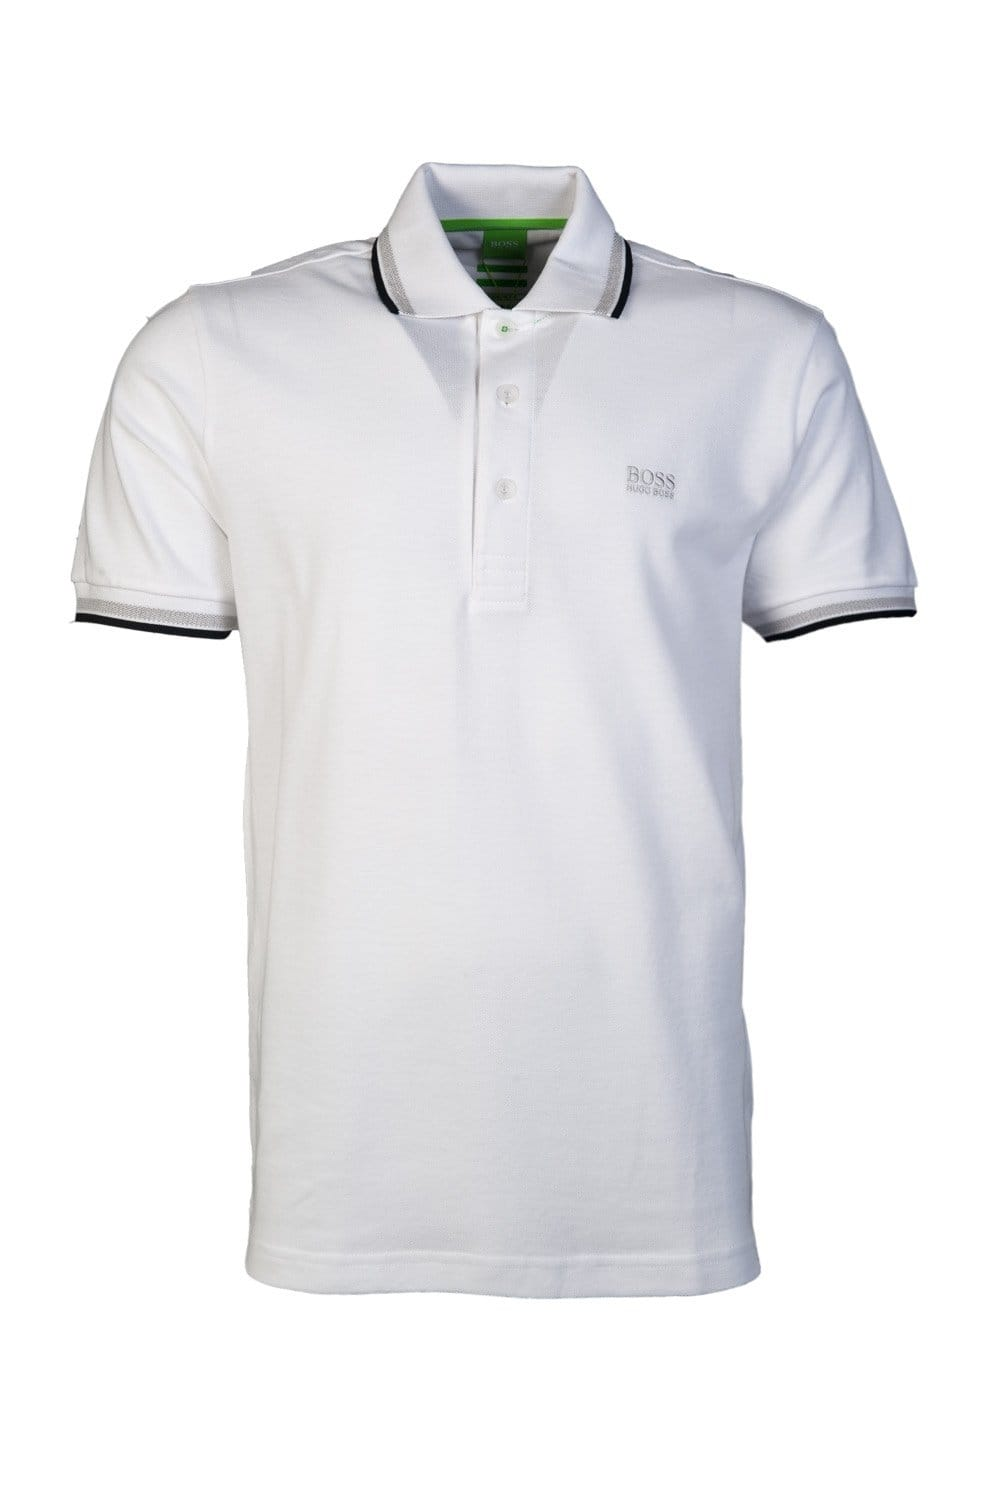 Hugo boss classic polo t shirt paddy 50198254 for Hugo boss green polo shirt sale